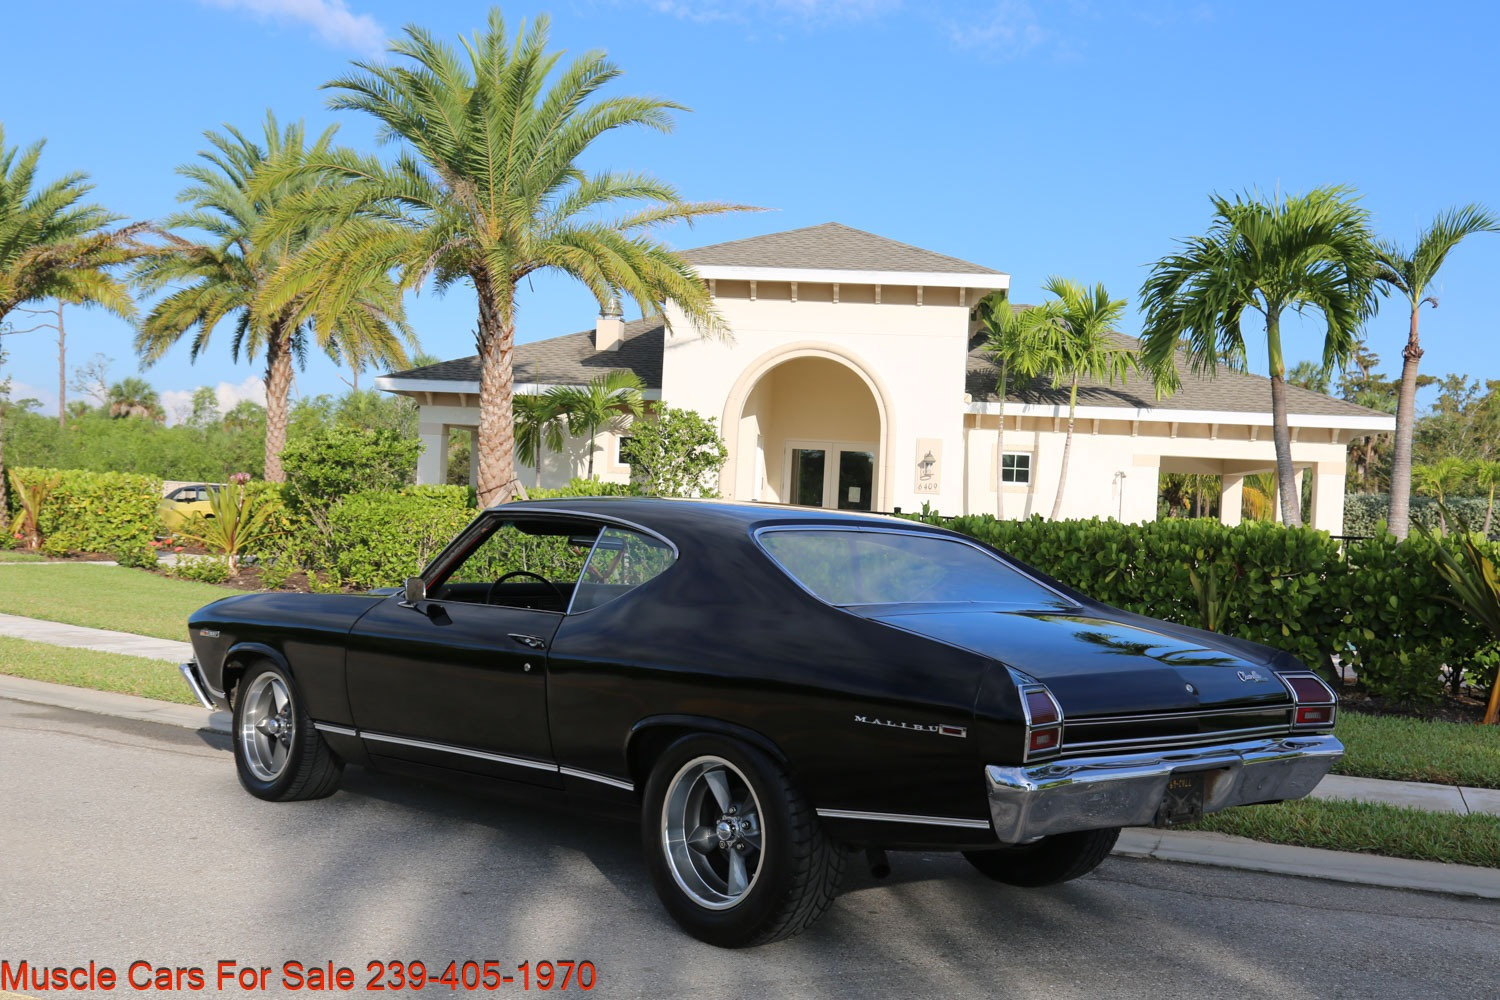 Used 1969 Chevrolet Chevelle Malibu 350 4 Speed for sale Sold at Muscle Cars for Sale Inc. in Fort Myers FL 33912 6